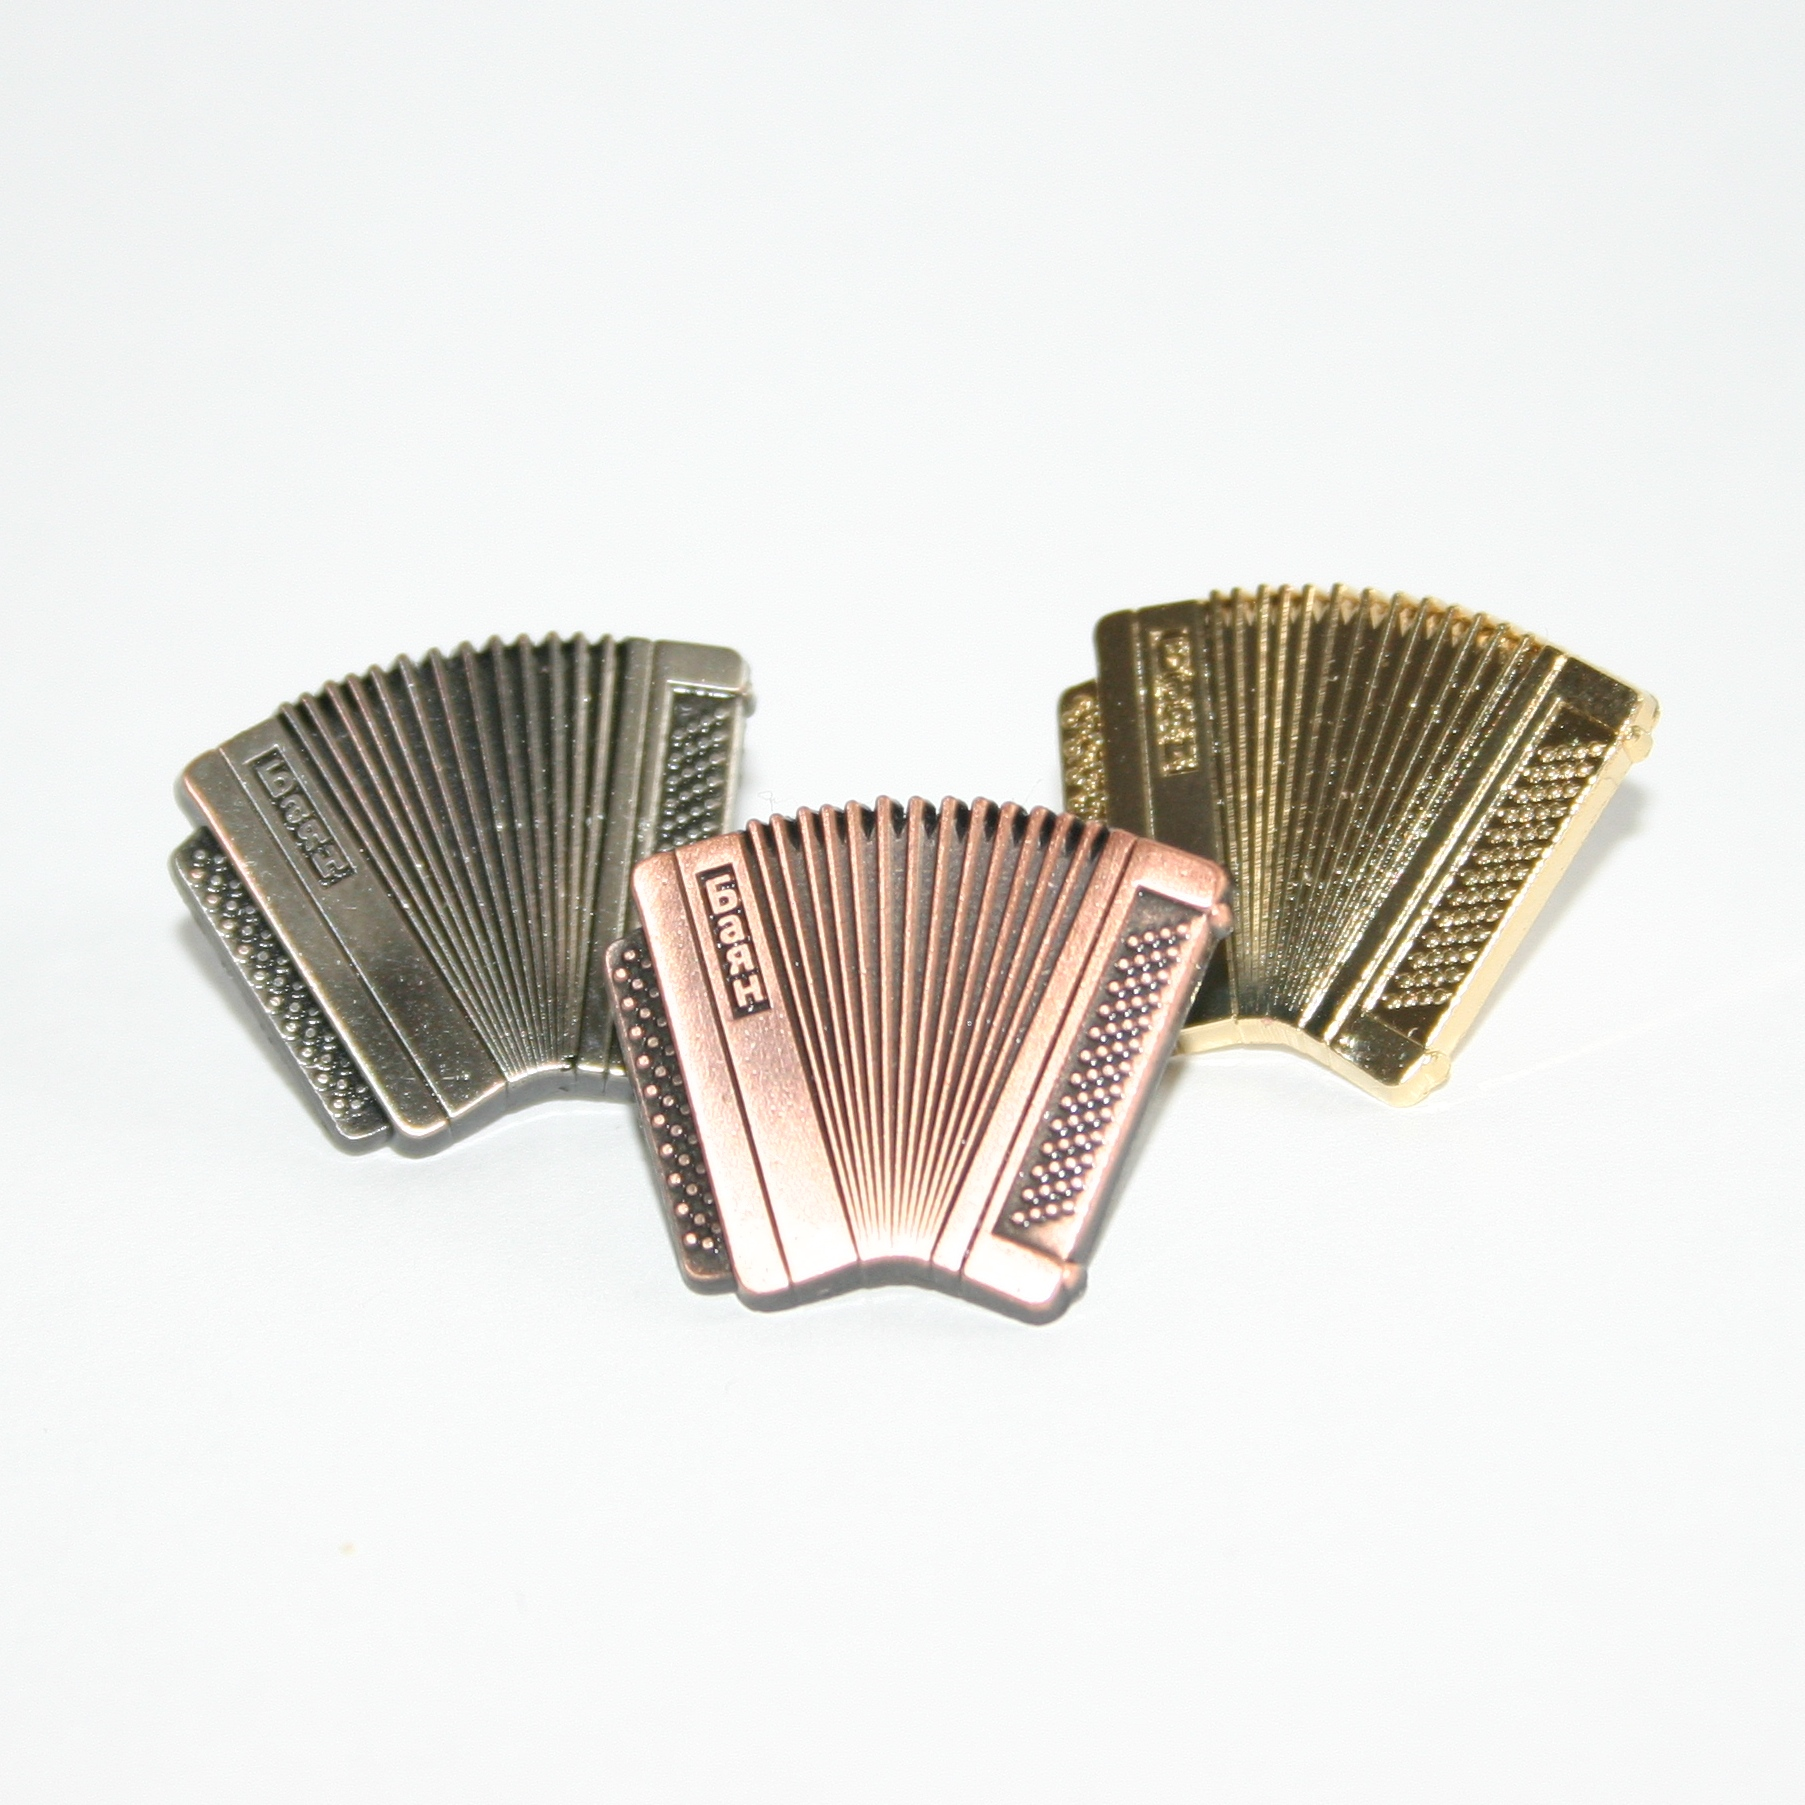 Accordion badges